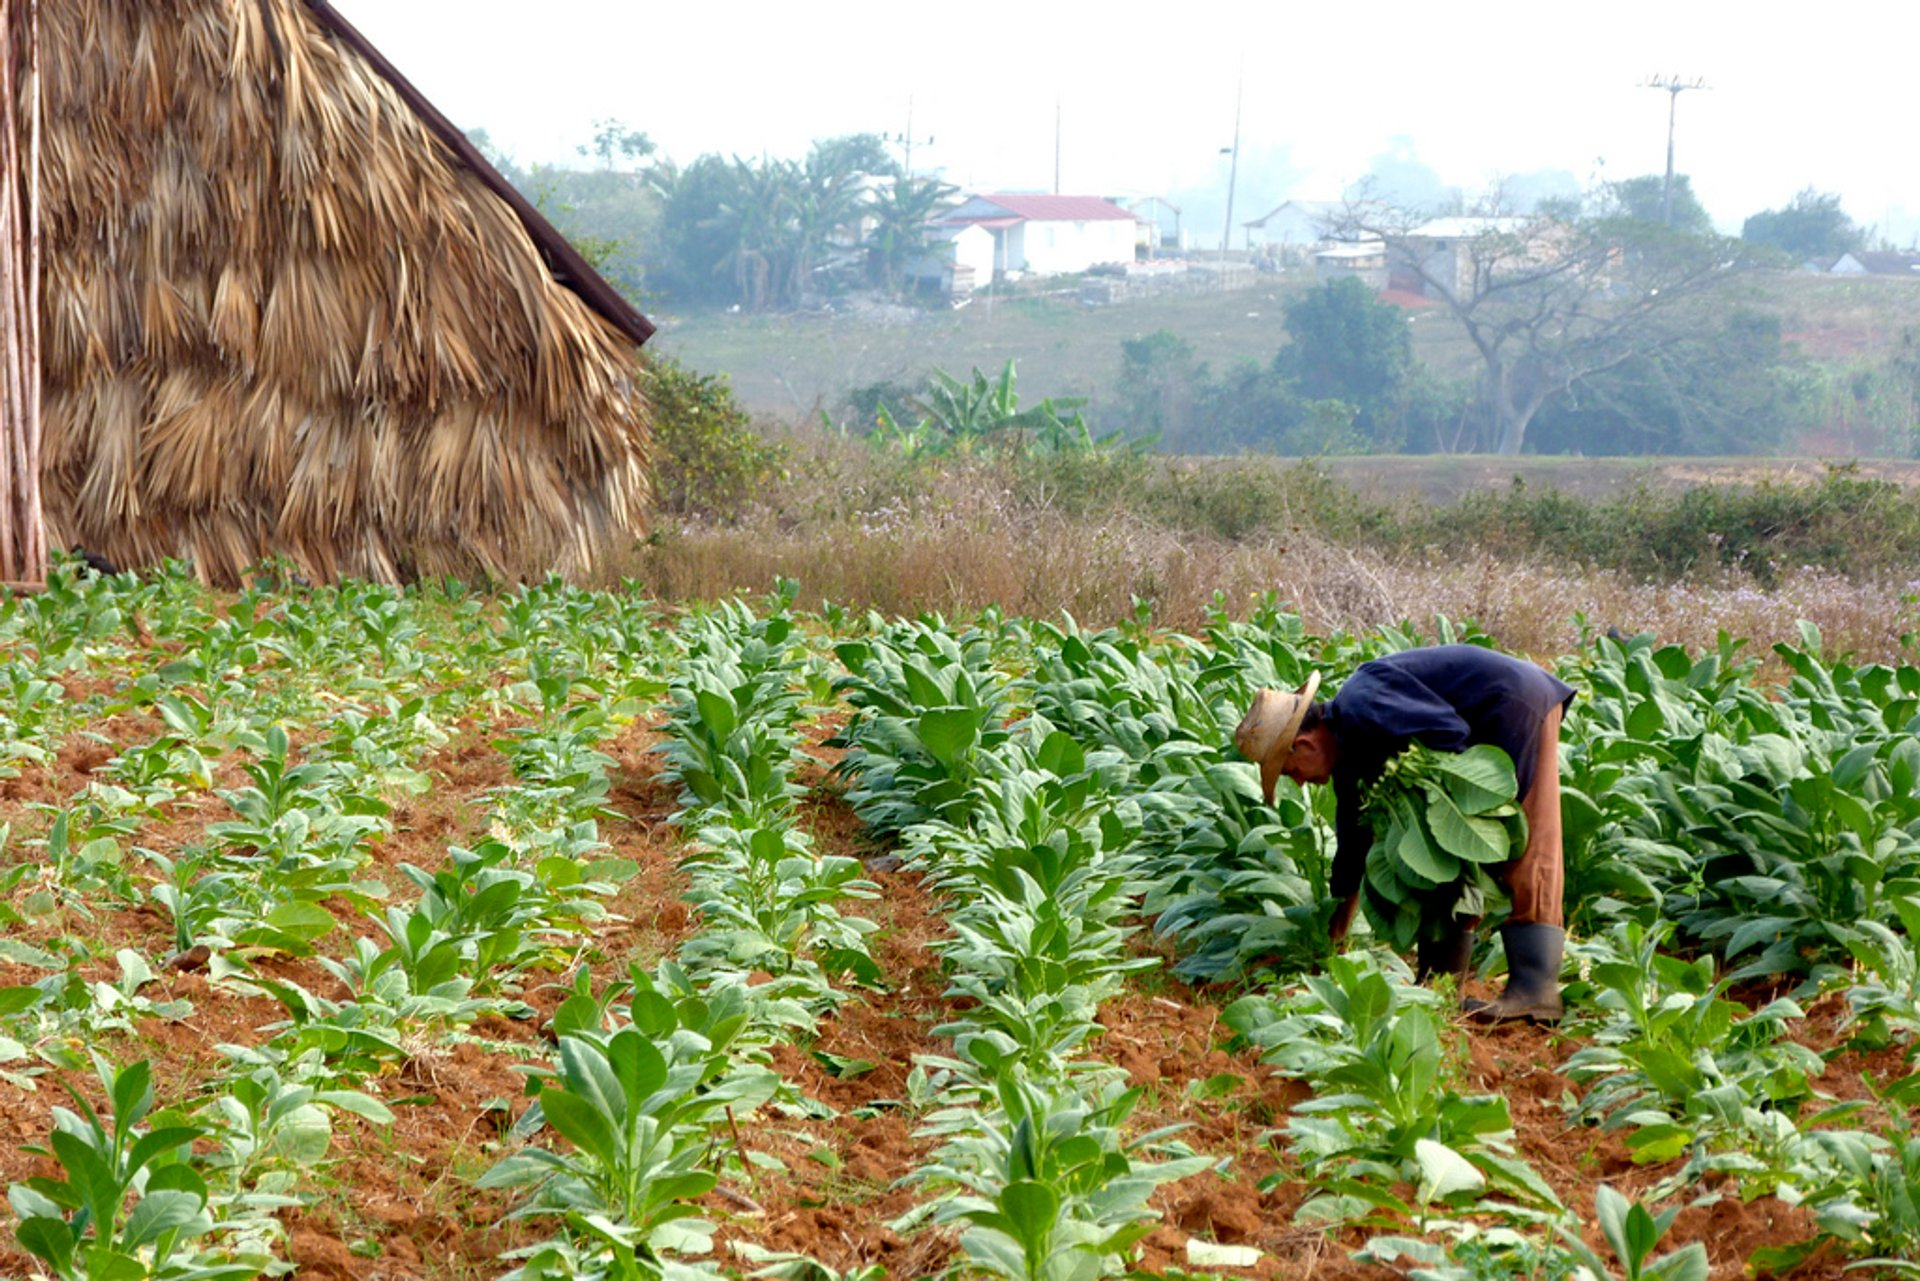 Harvesting tobacco in Vinales 2020